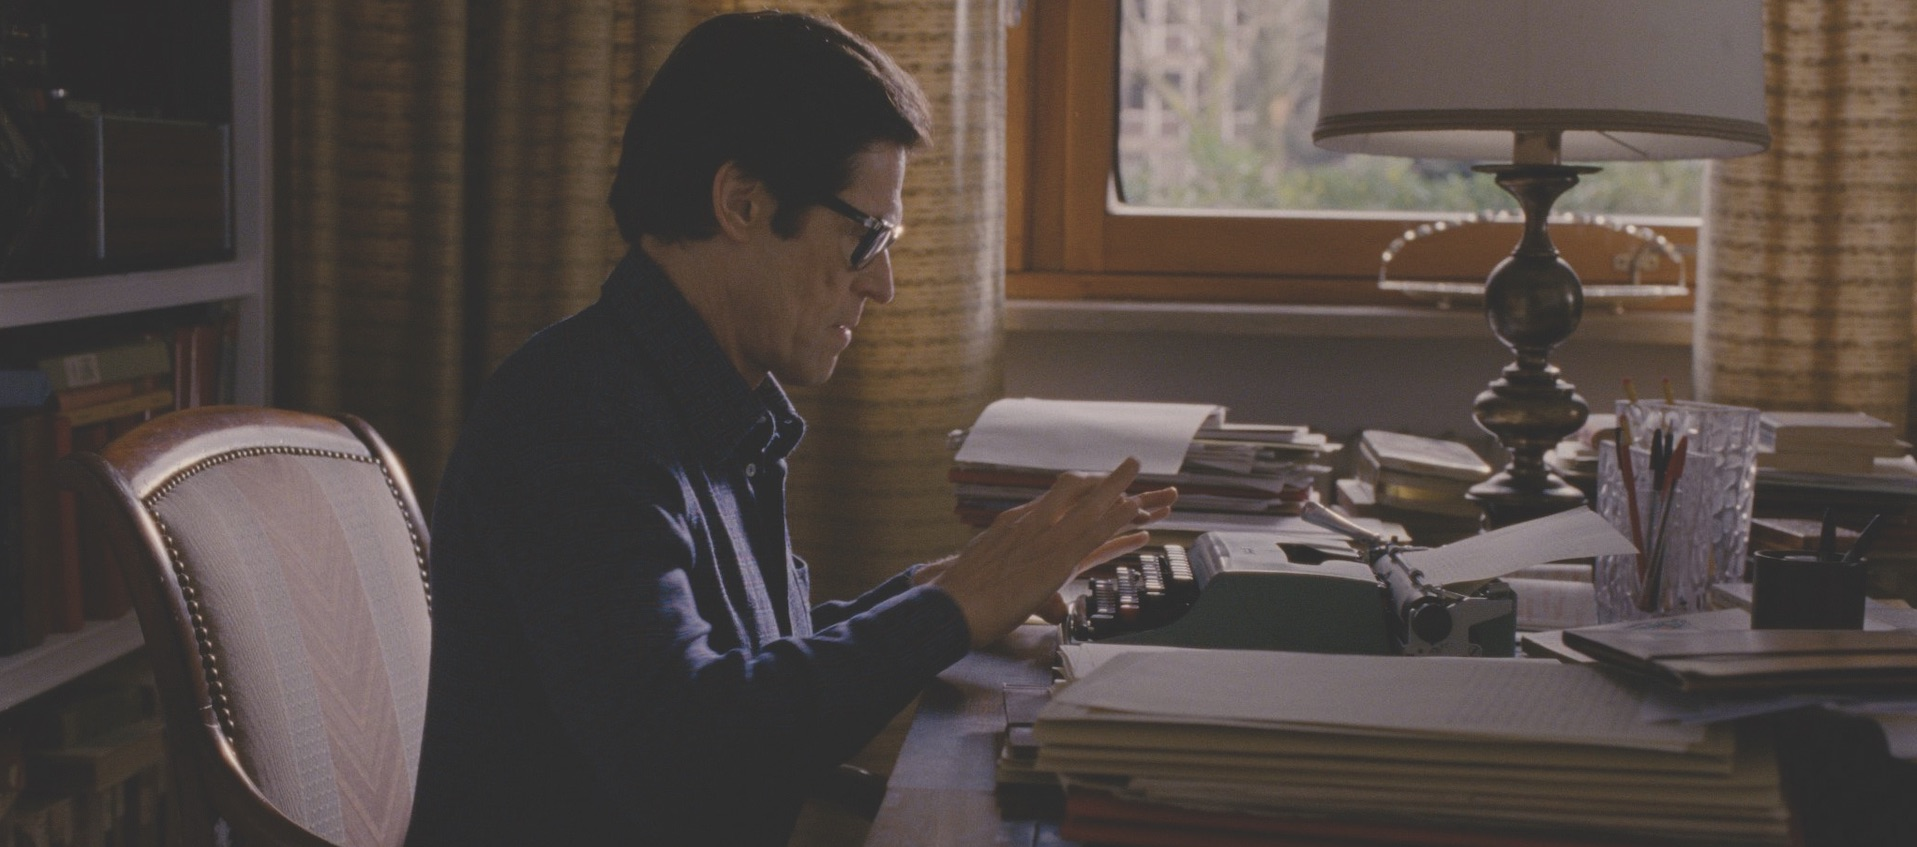 Willem Dafoe as filmmaker Pier Paolo Pasolini sits at a desk and types in a still from Abel Ferrar's biopic Pasolini, courtesy of Kino Lorber Films